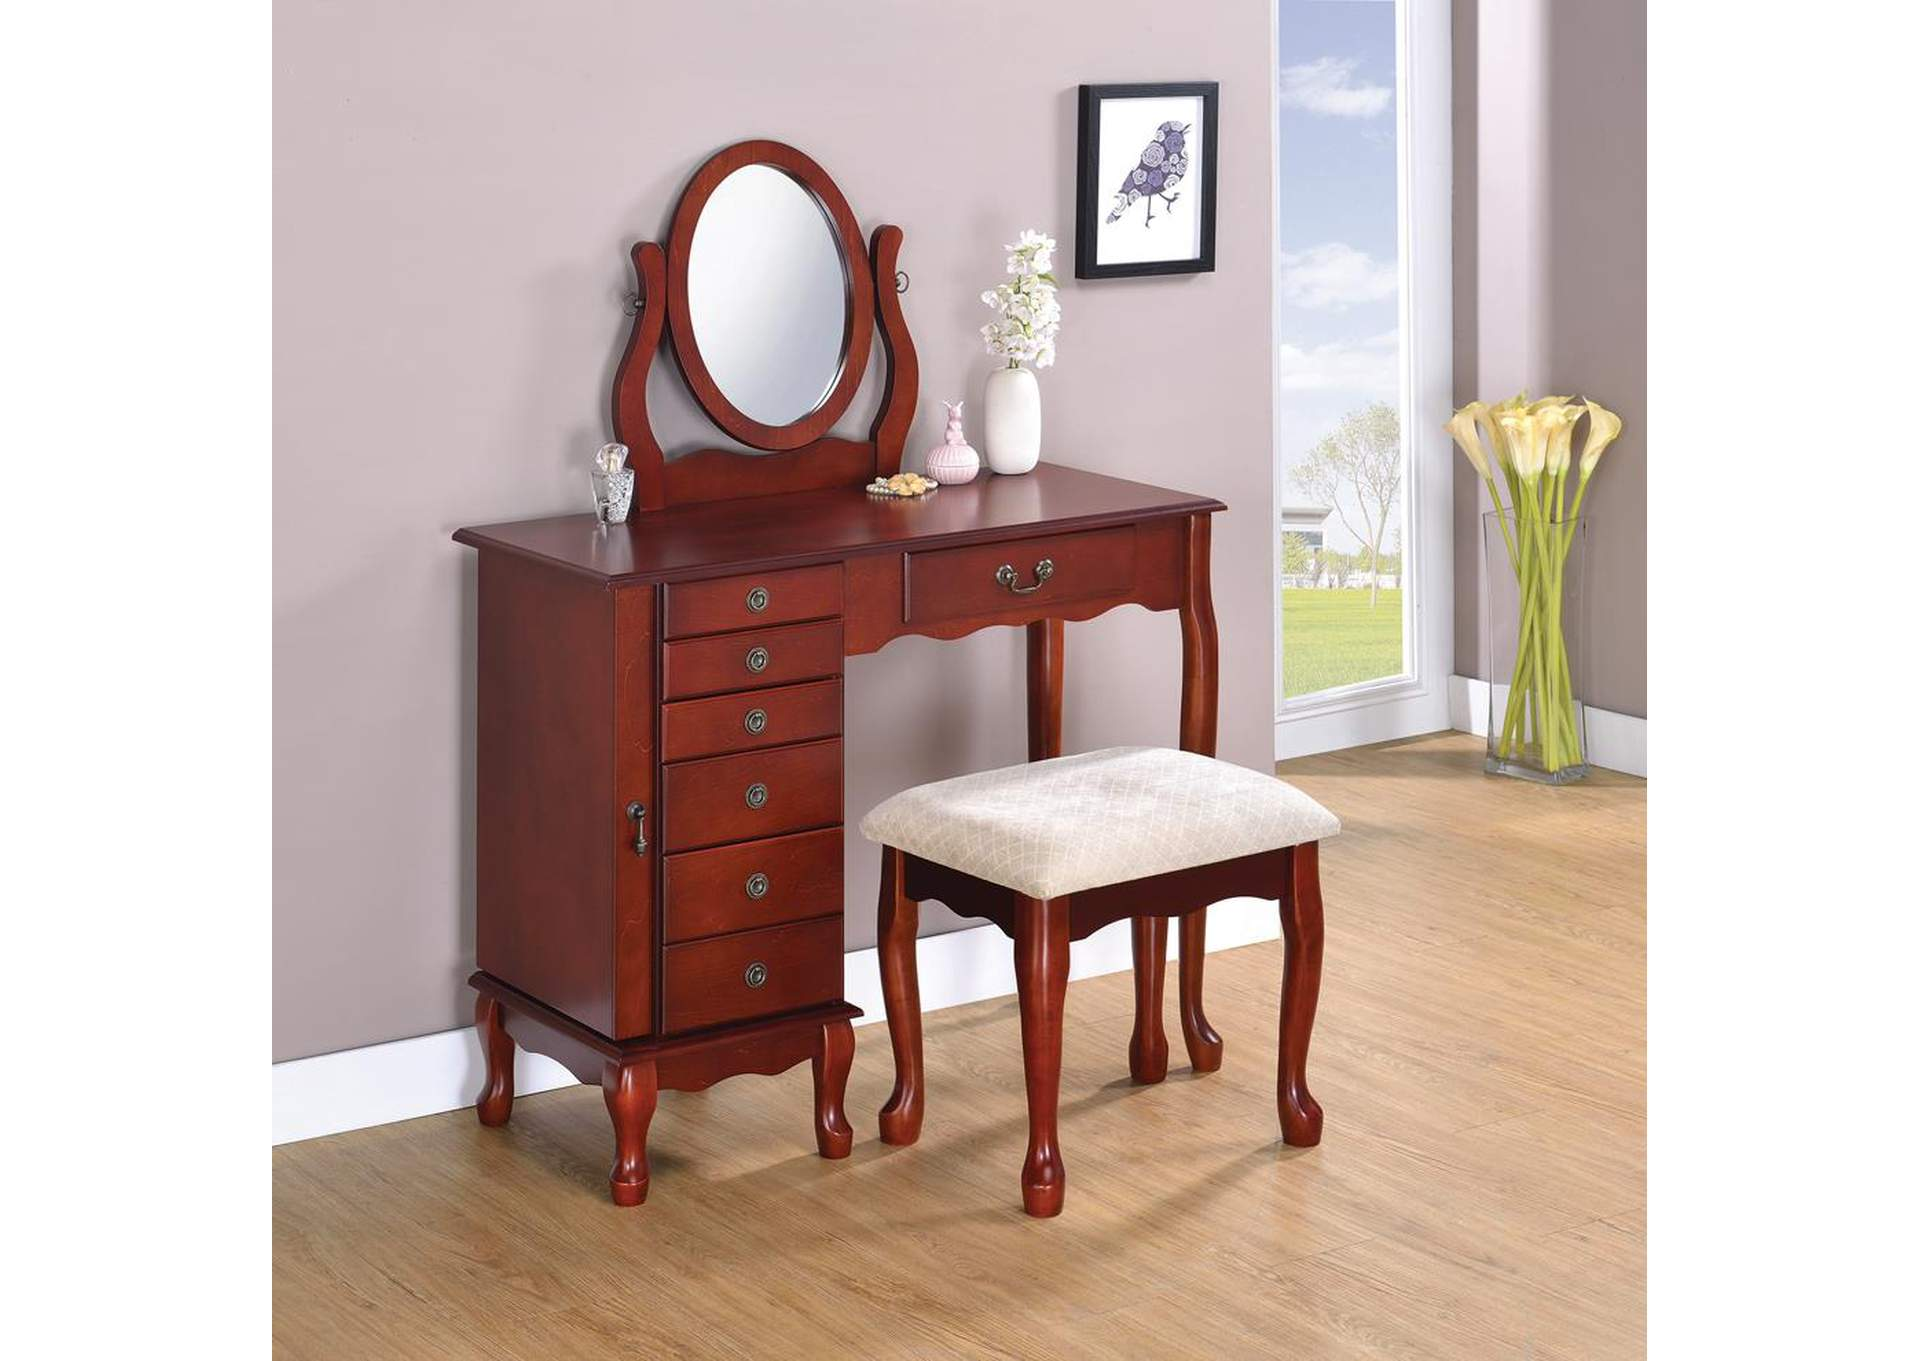 Cream & Cherry Vanity & Stool Set,Coaster Furniture